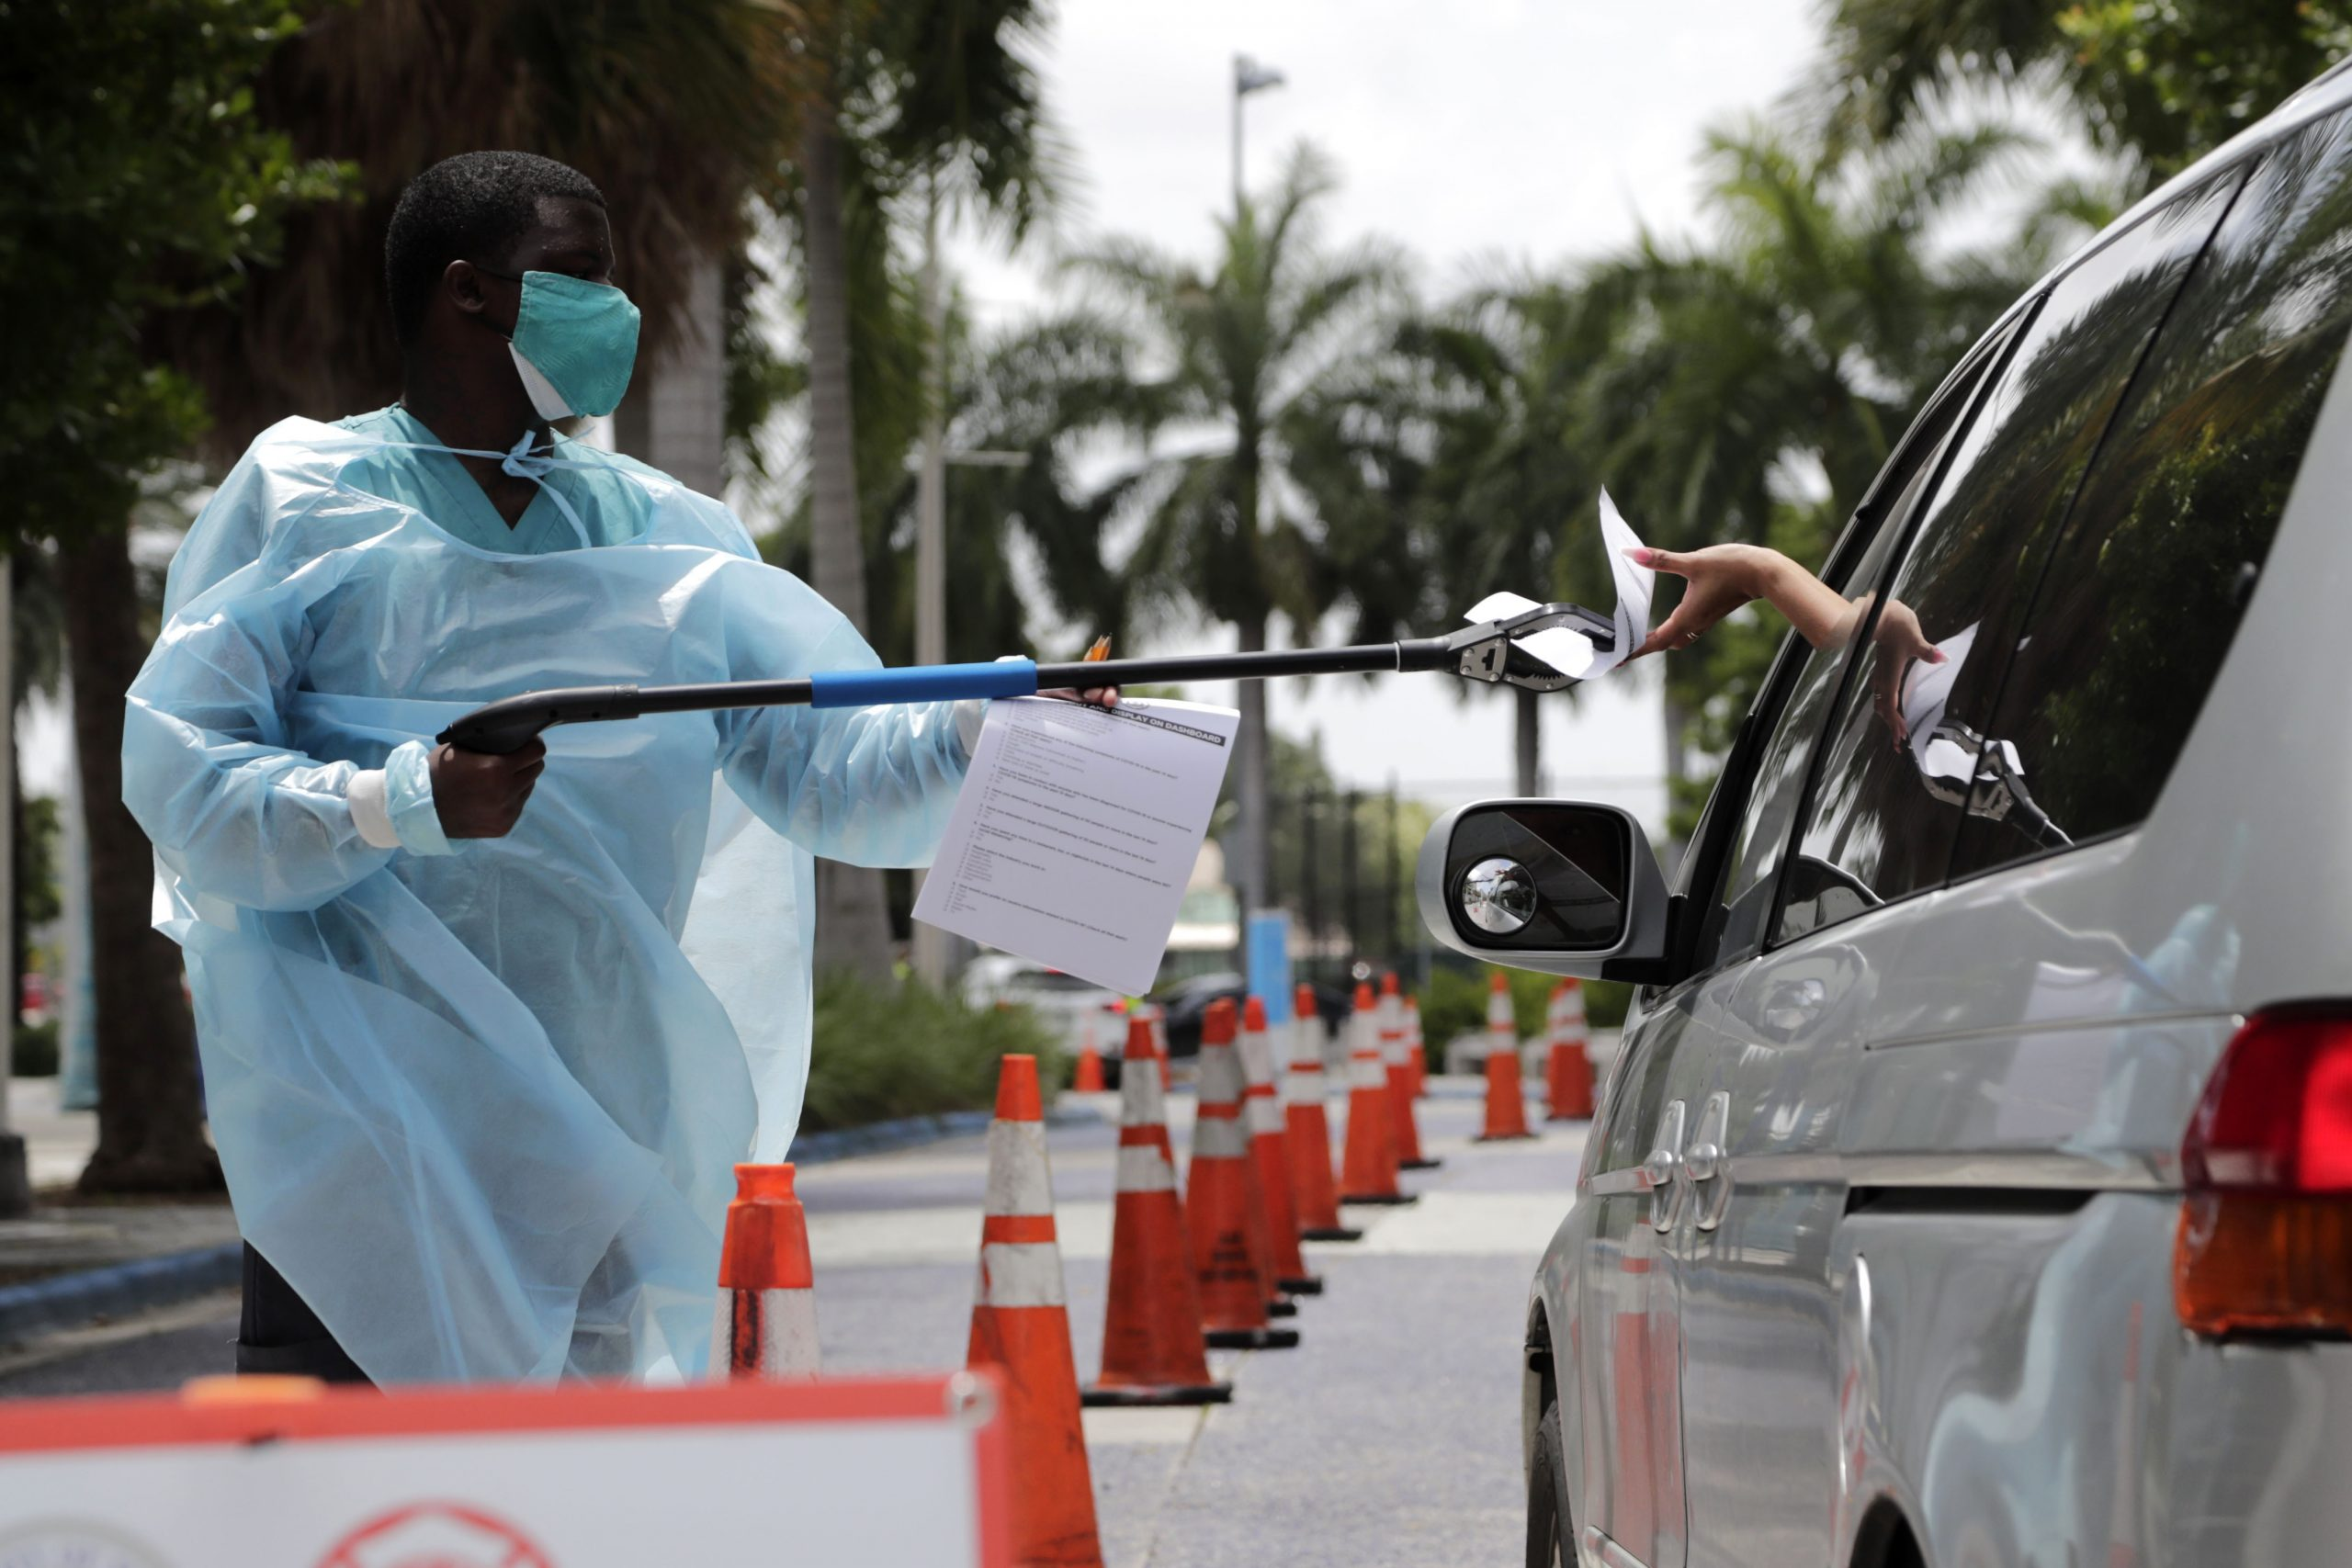 A health care worker passes paperwork to someone at a Covid-19 testing site in Miami on July 27.